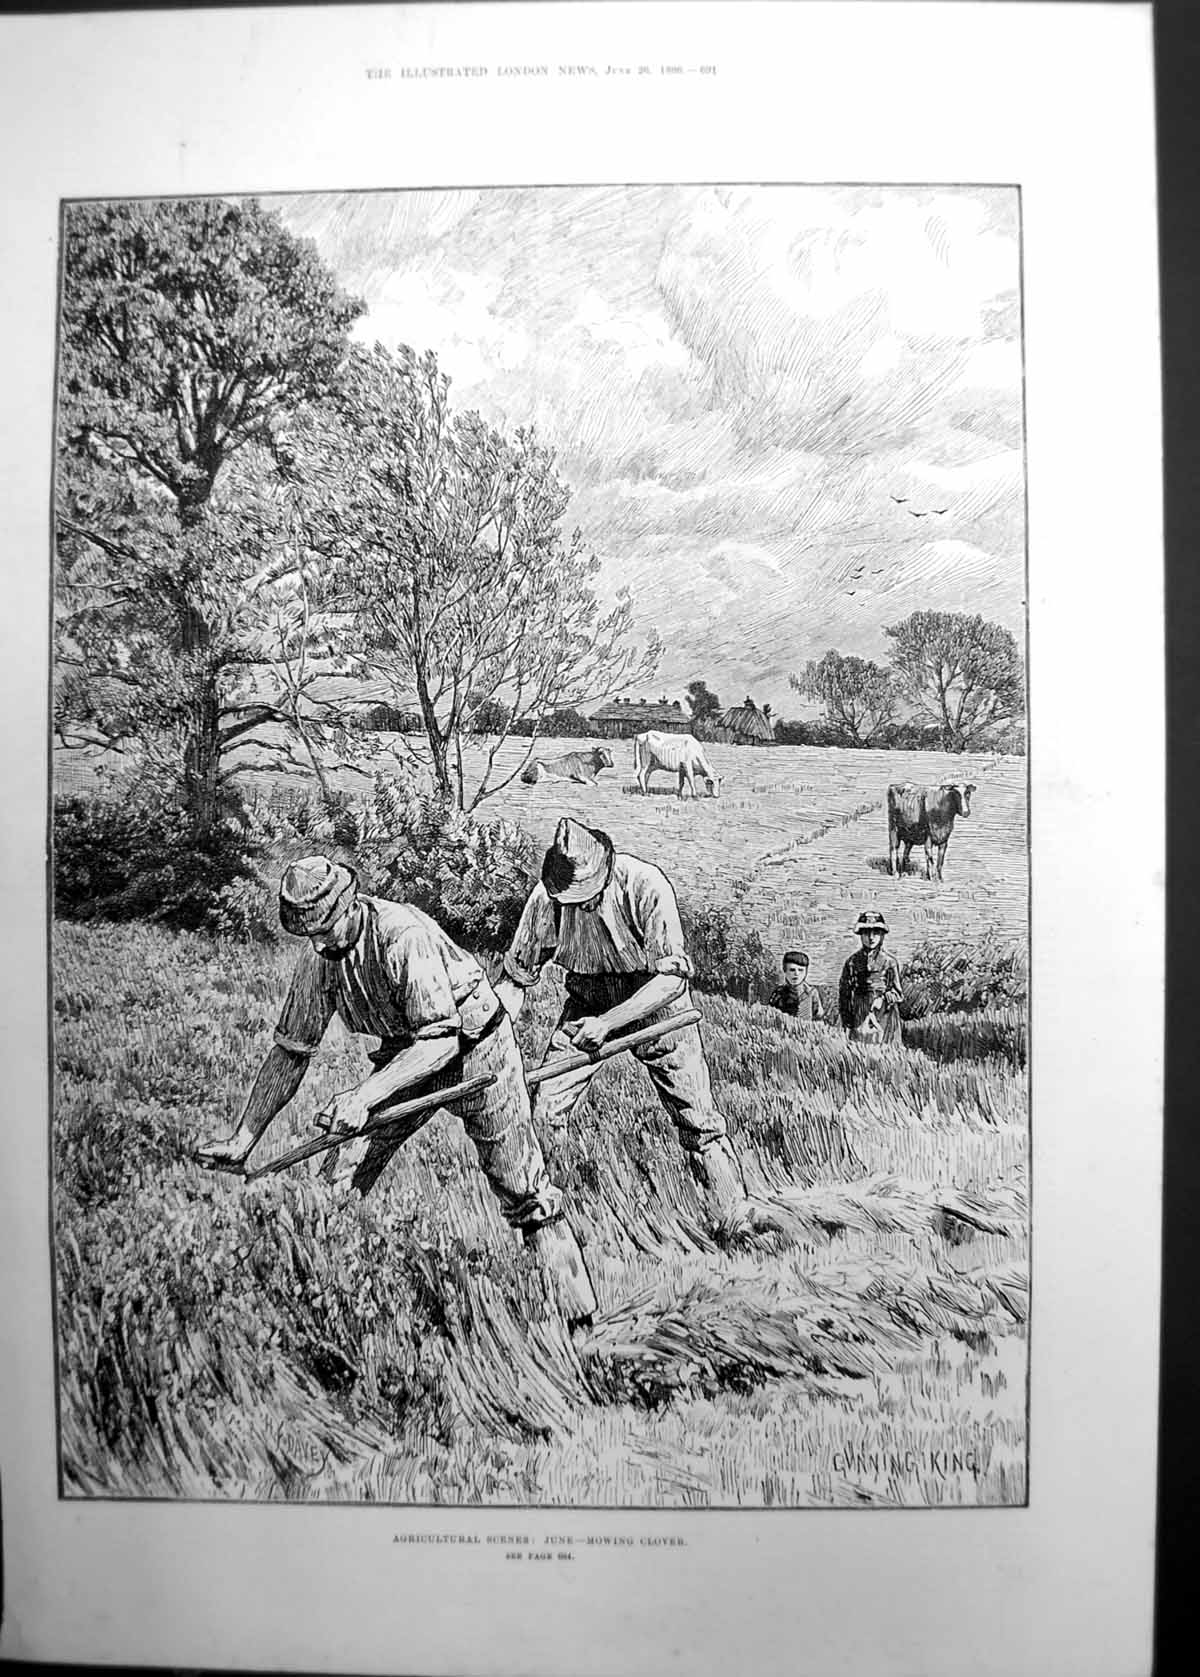 Original-Old-Antique-Print-Agricultural-Scenes-Mowing-Clover-Men-Cattle-1886